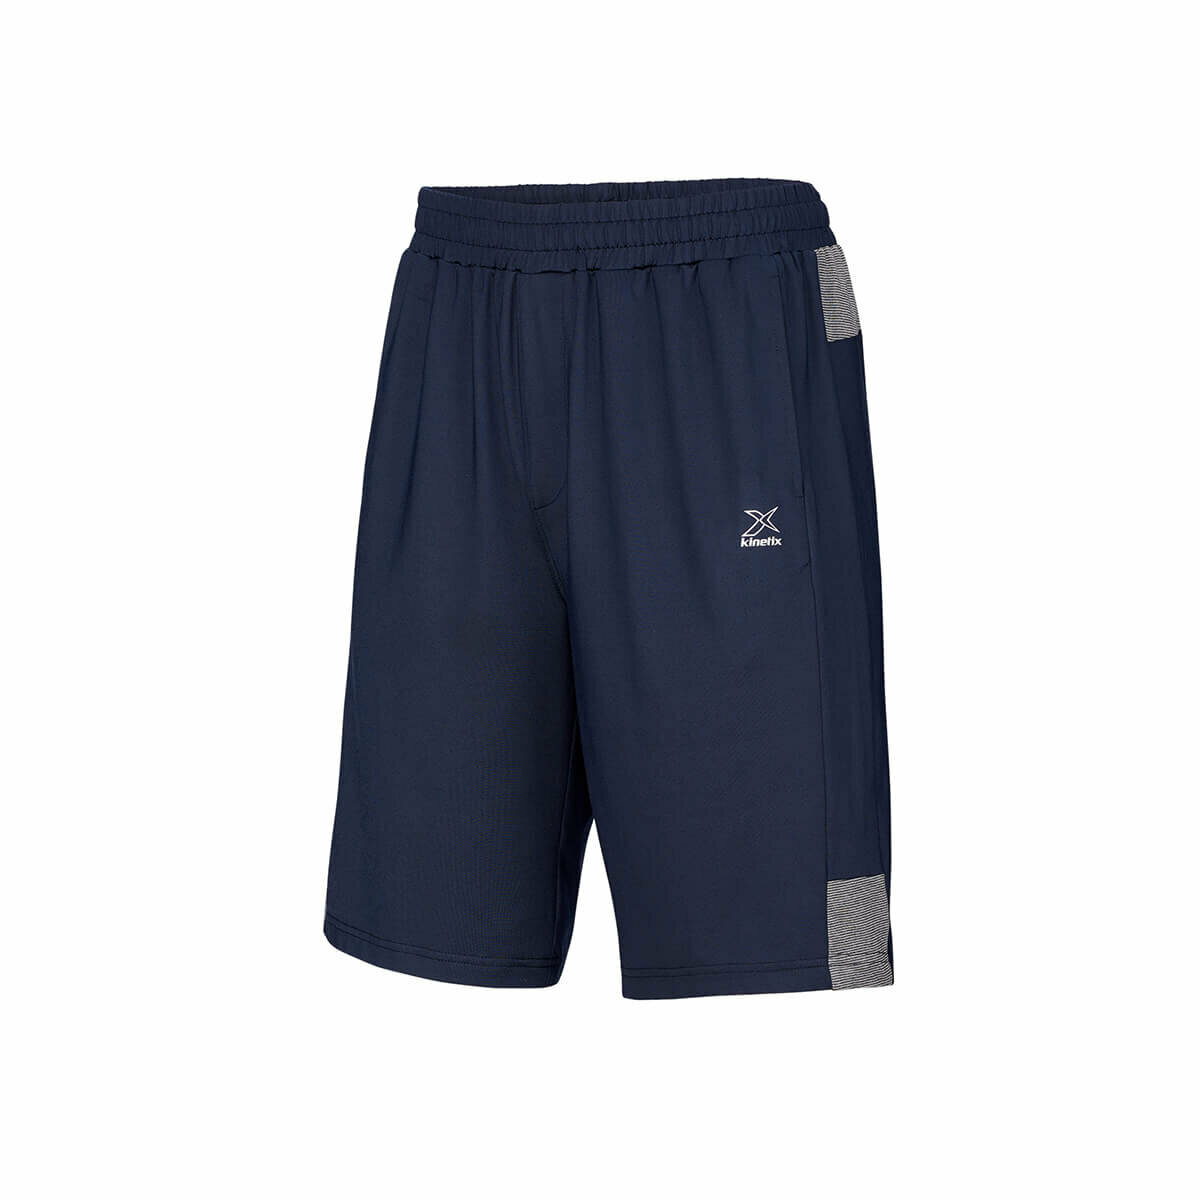 FLO FREDY SHORT Navy Blue Men 'S Shorts KINETIX